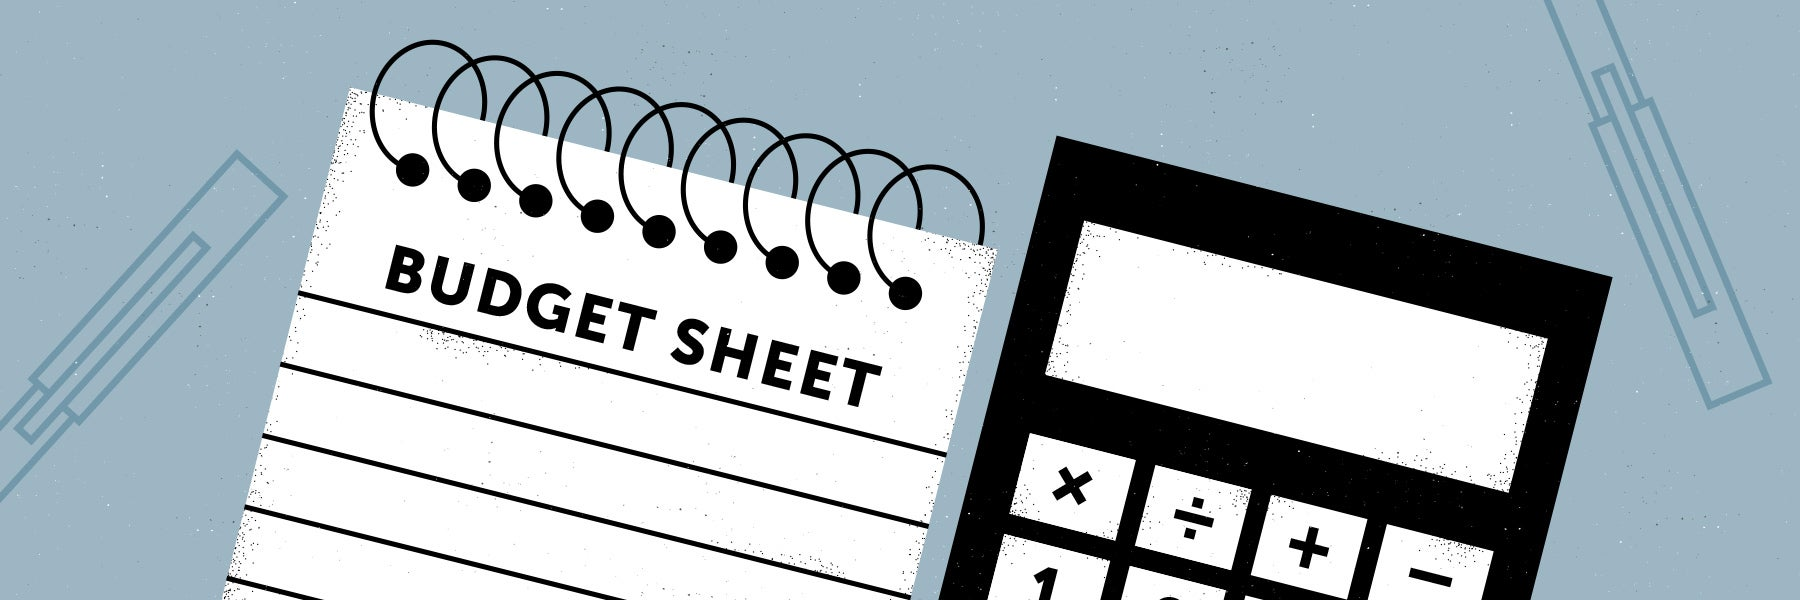 graphic of budget sheet and calculator